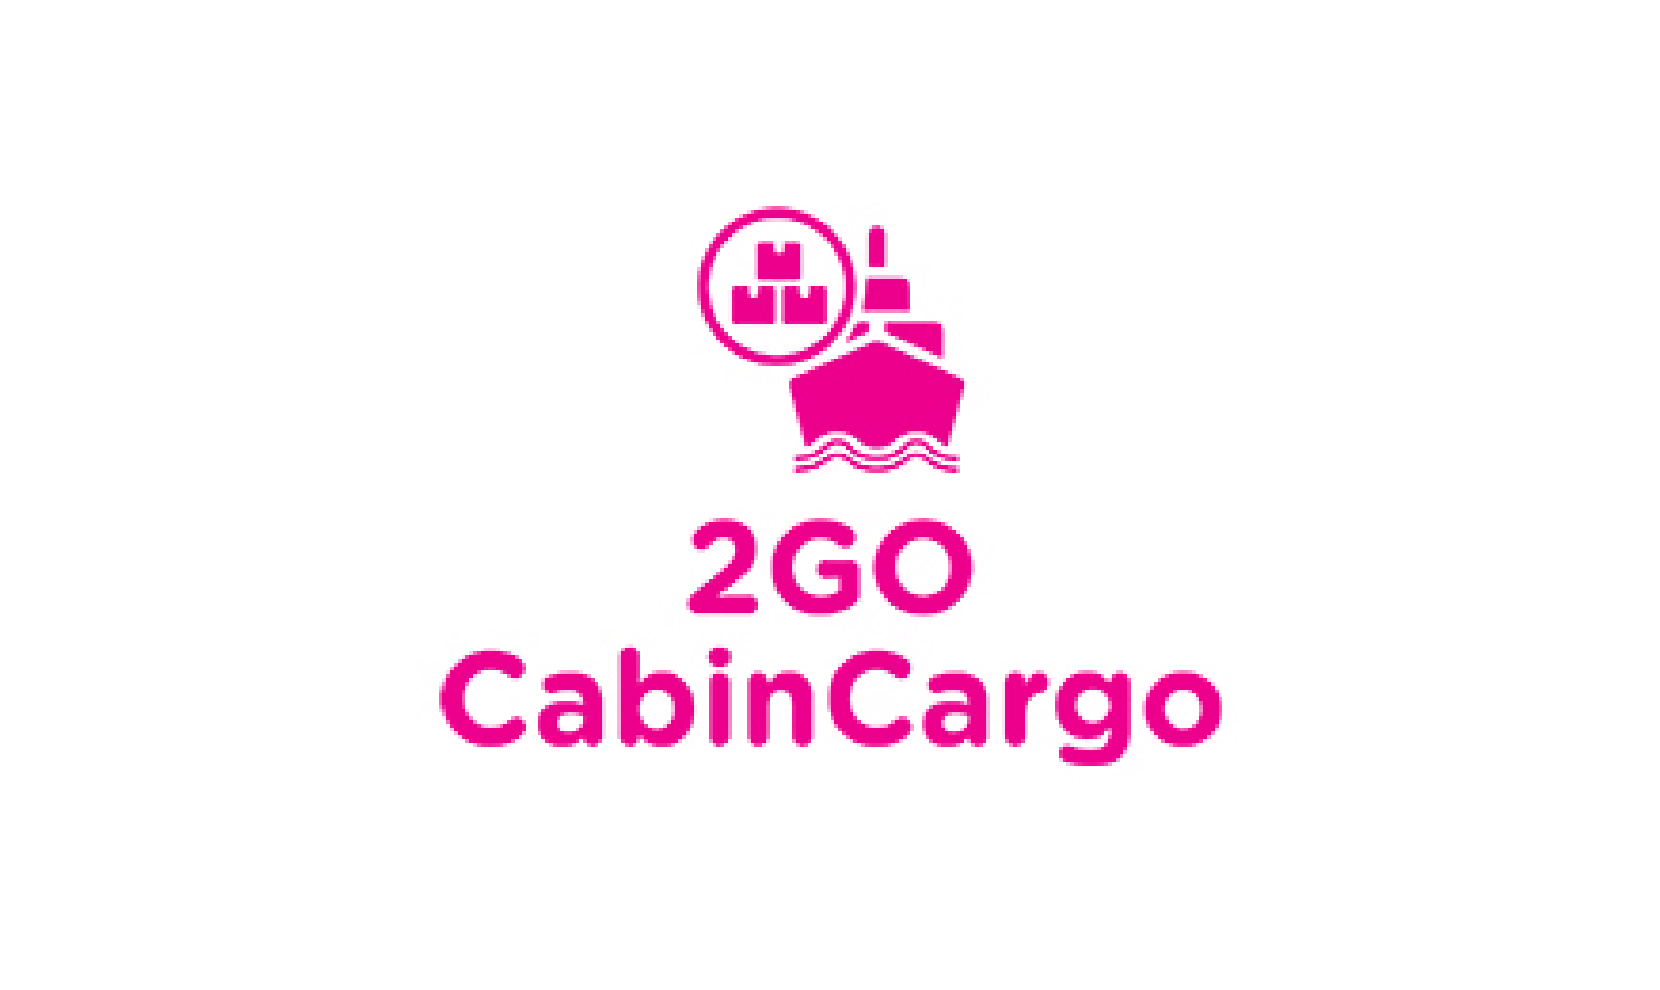 2go-group-shows-signs-of-business-recovery-in-the-second-half-of-2021-releases-2go-cabincargo-for-ocean-transportation